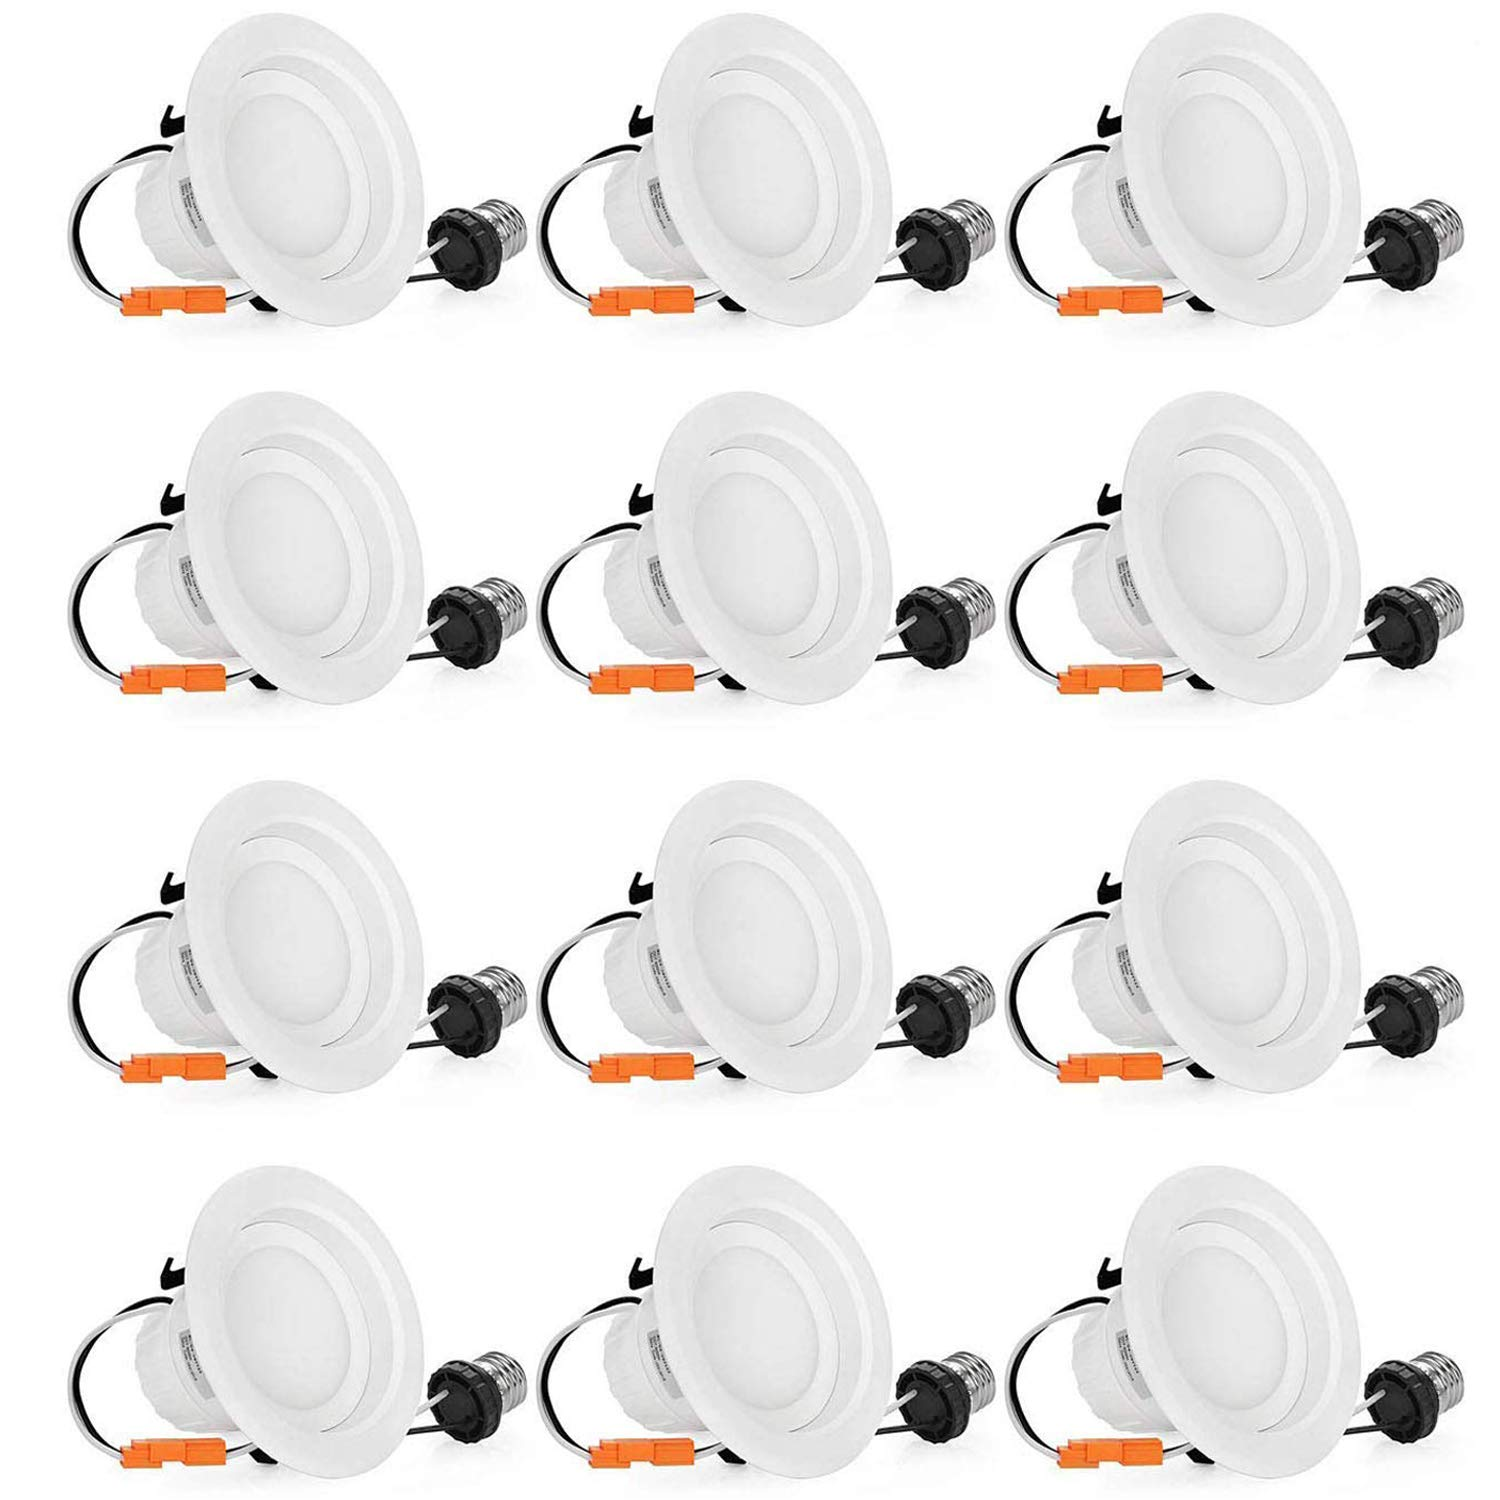 4 Inch LED Recessed Lighting 65W Equivalent Dimmable 4in LED Downlight 9W, 4000K Daylight White, 780LM Retrofit LED Recessed Lighting Fixture, 12-Pack